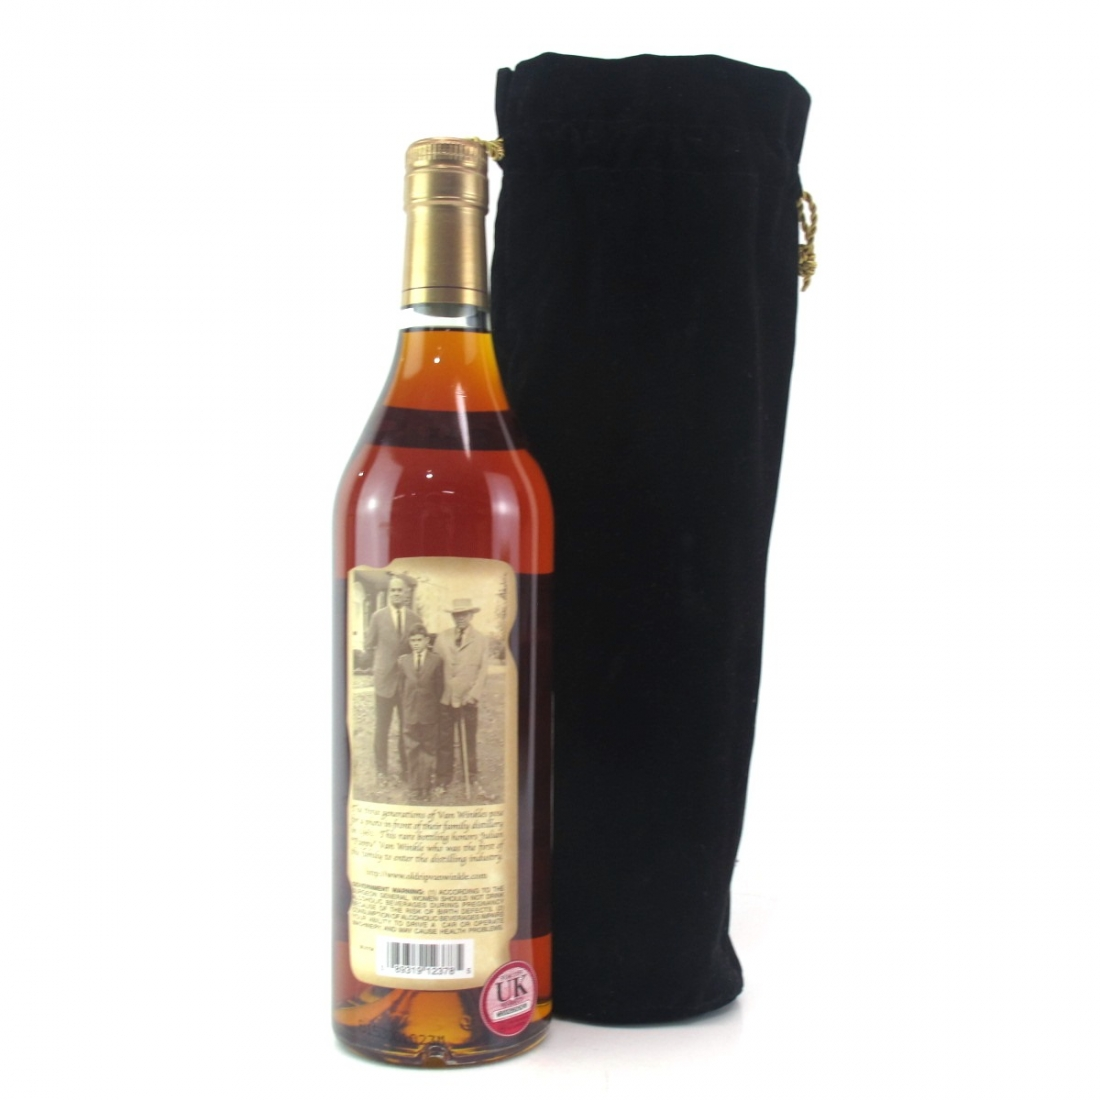 Pappy Van Winkle23 Year Old Family Reserve